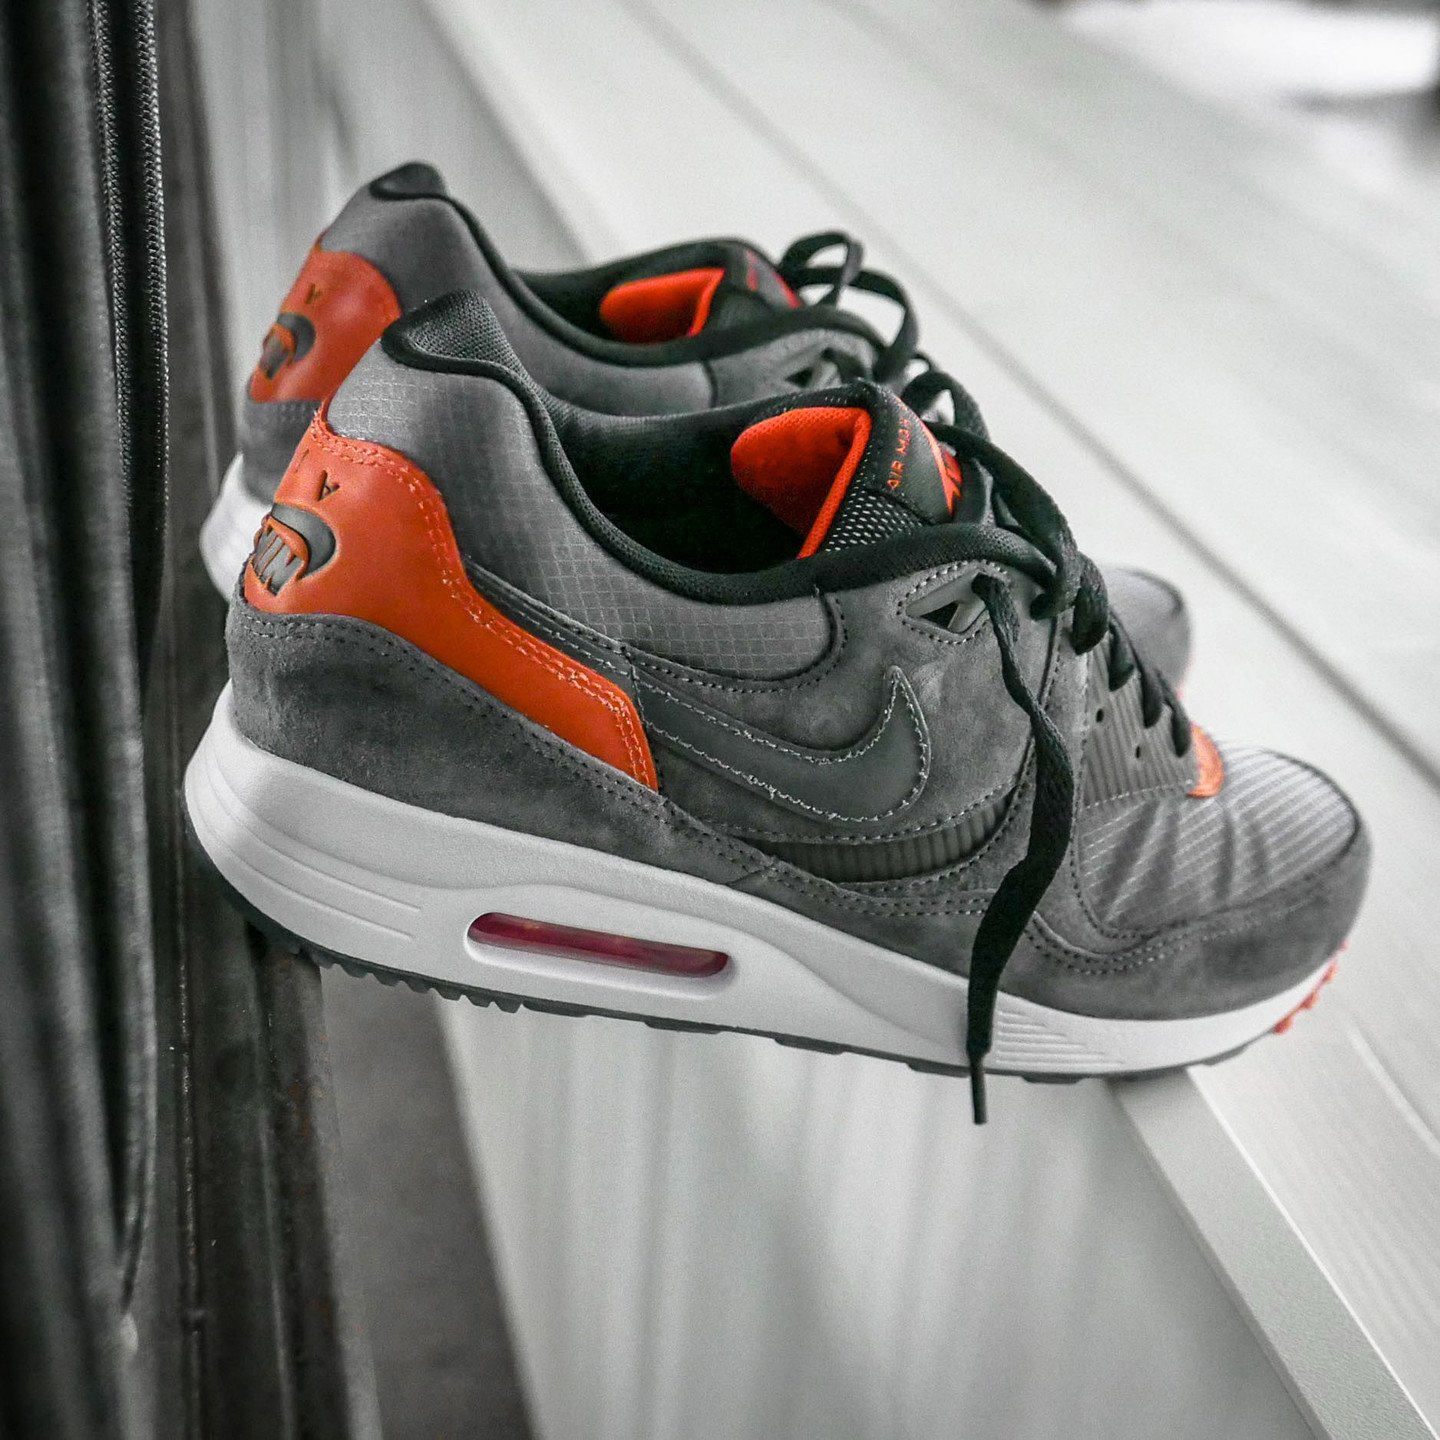 Nike Air Max Light x Size? Dark Grey / Team Orange / White CD1510-001